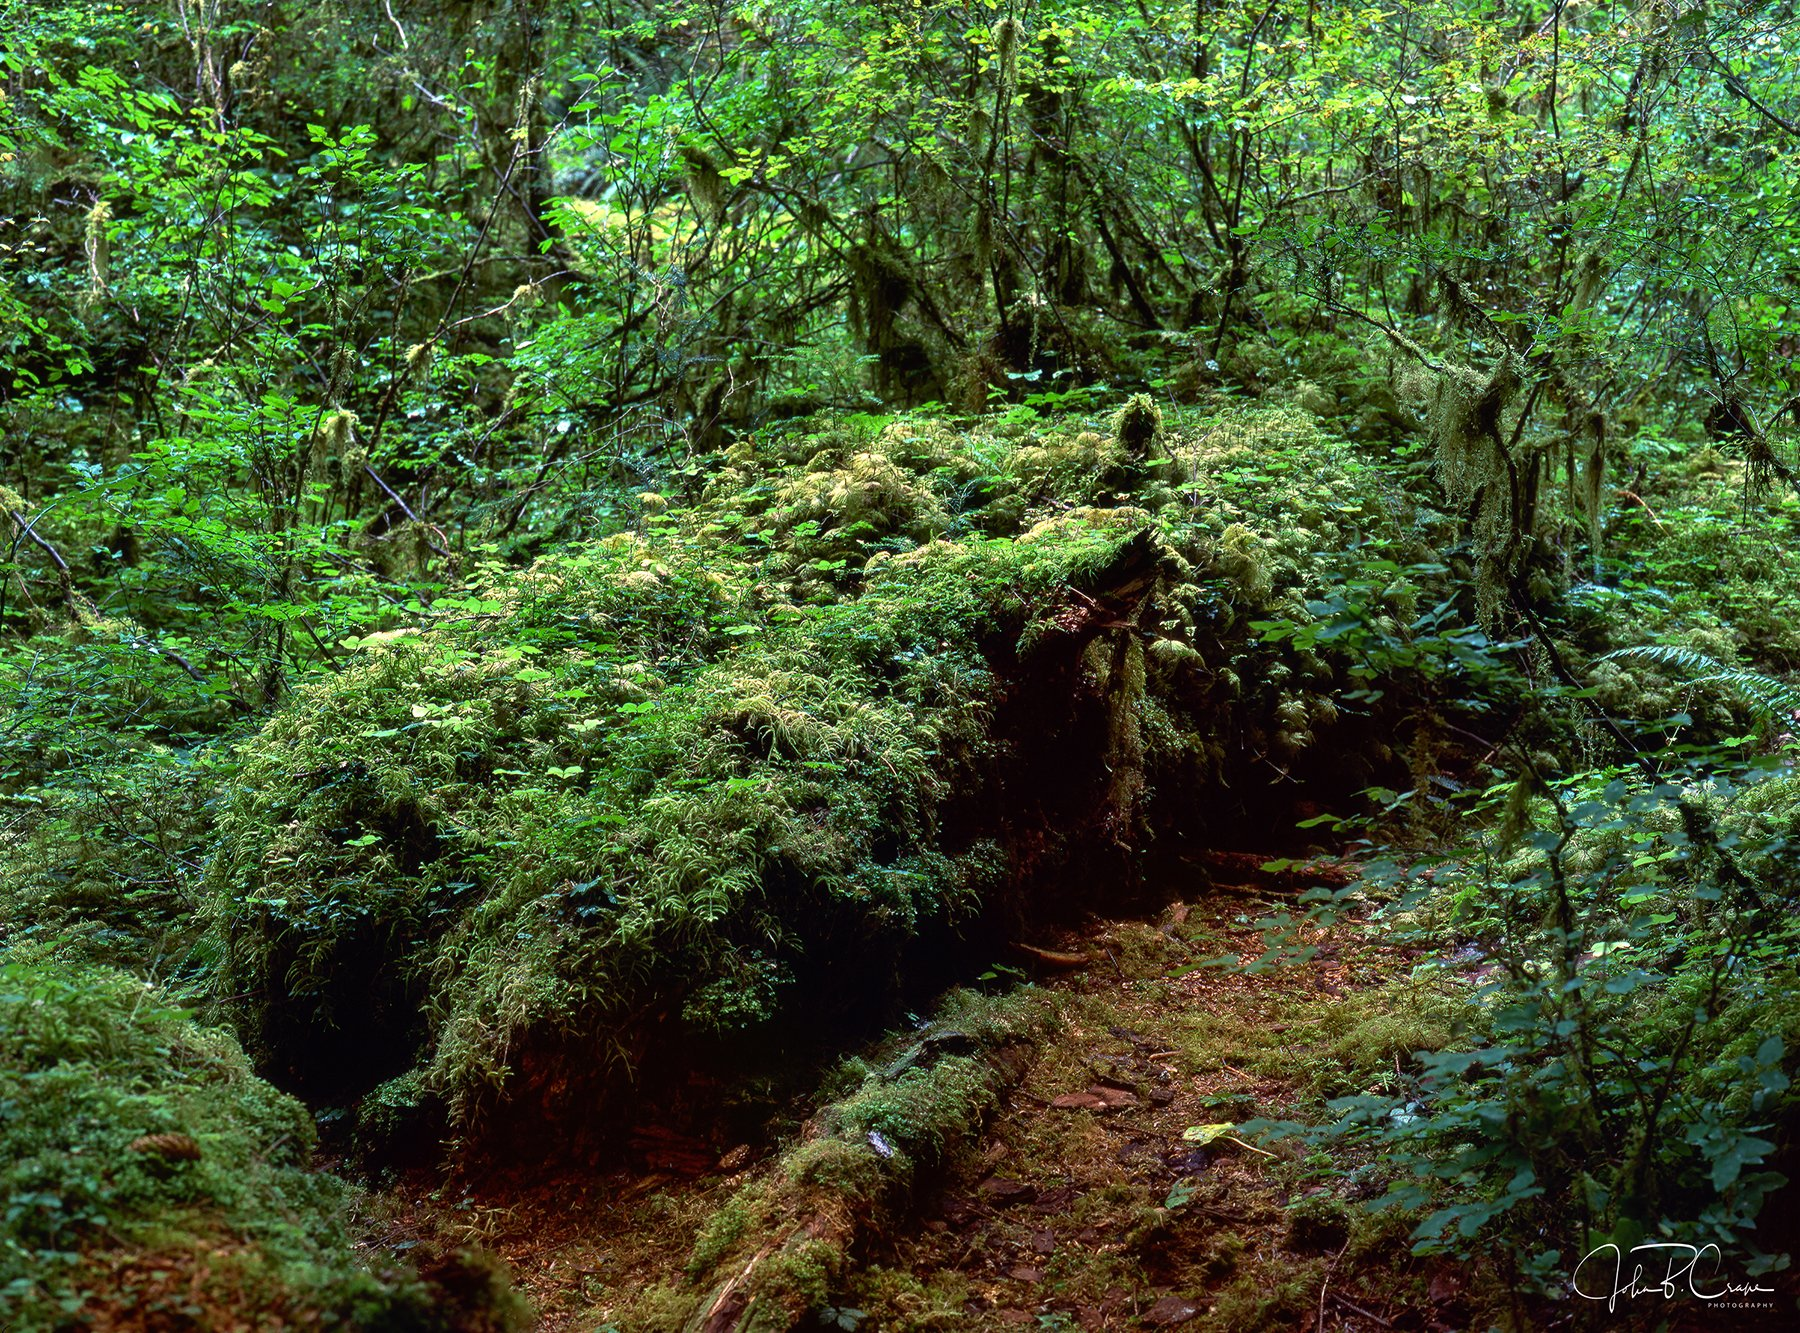 Nurse log, Hoh Rainforest, Olympic National Park, Washington